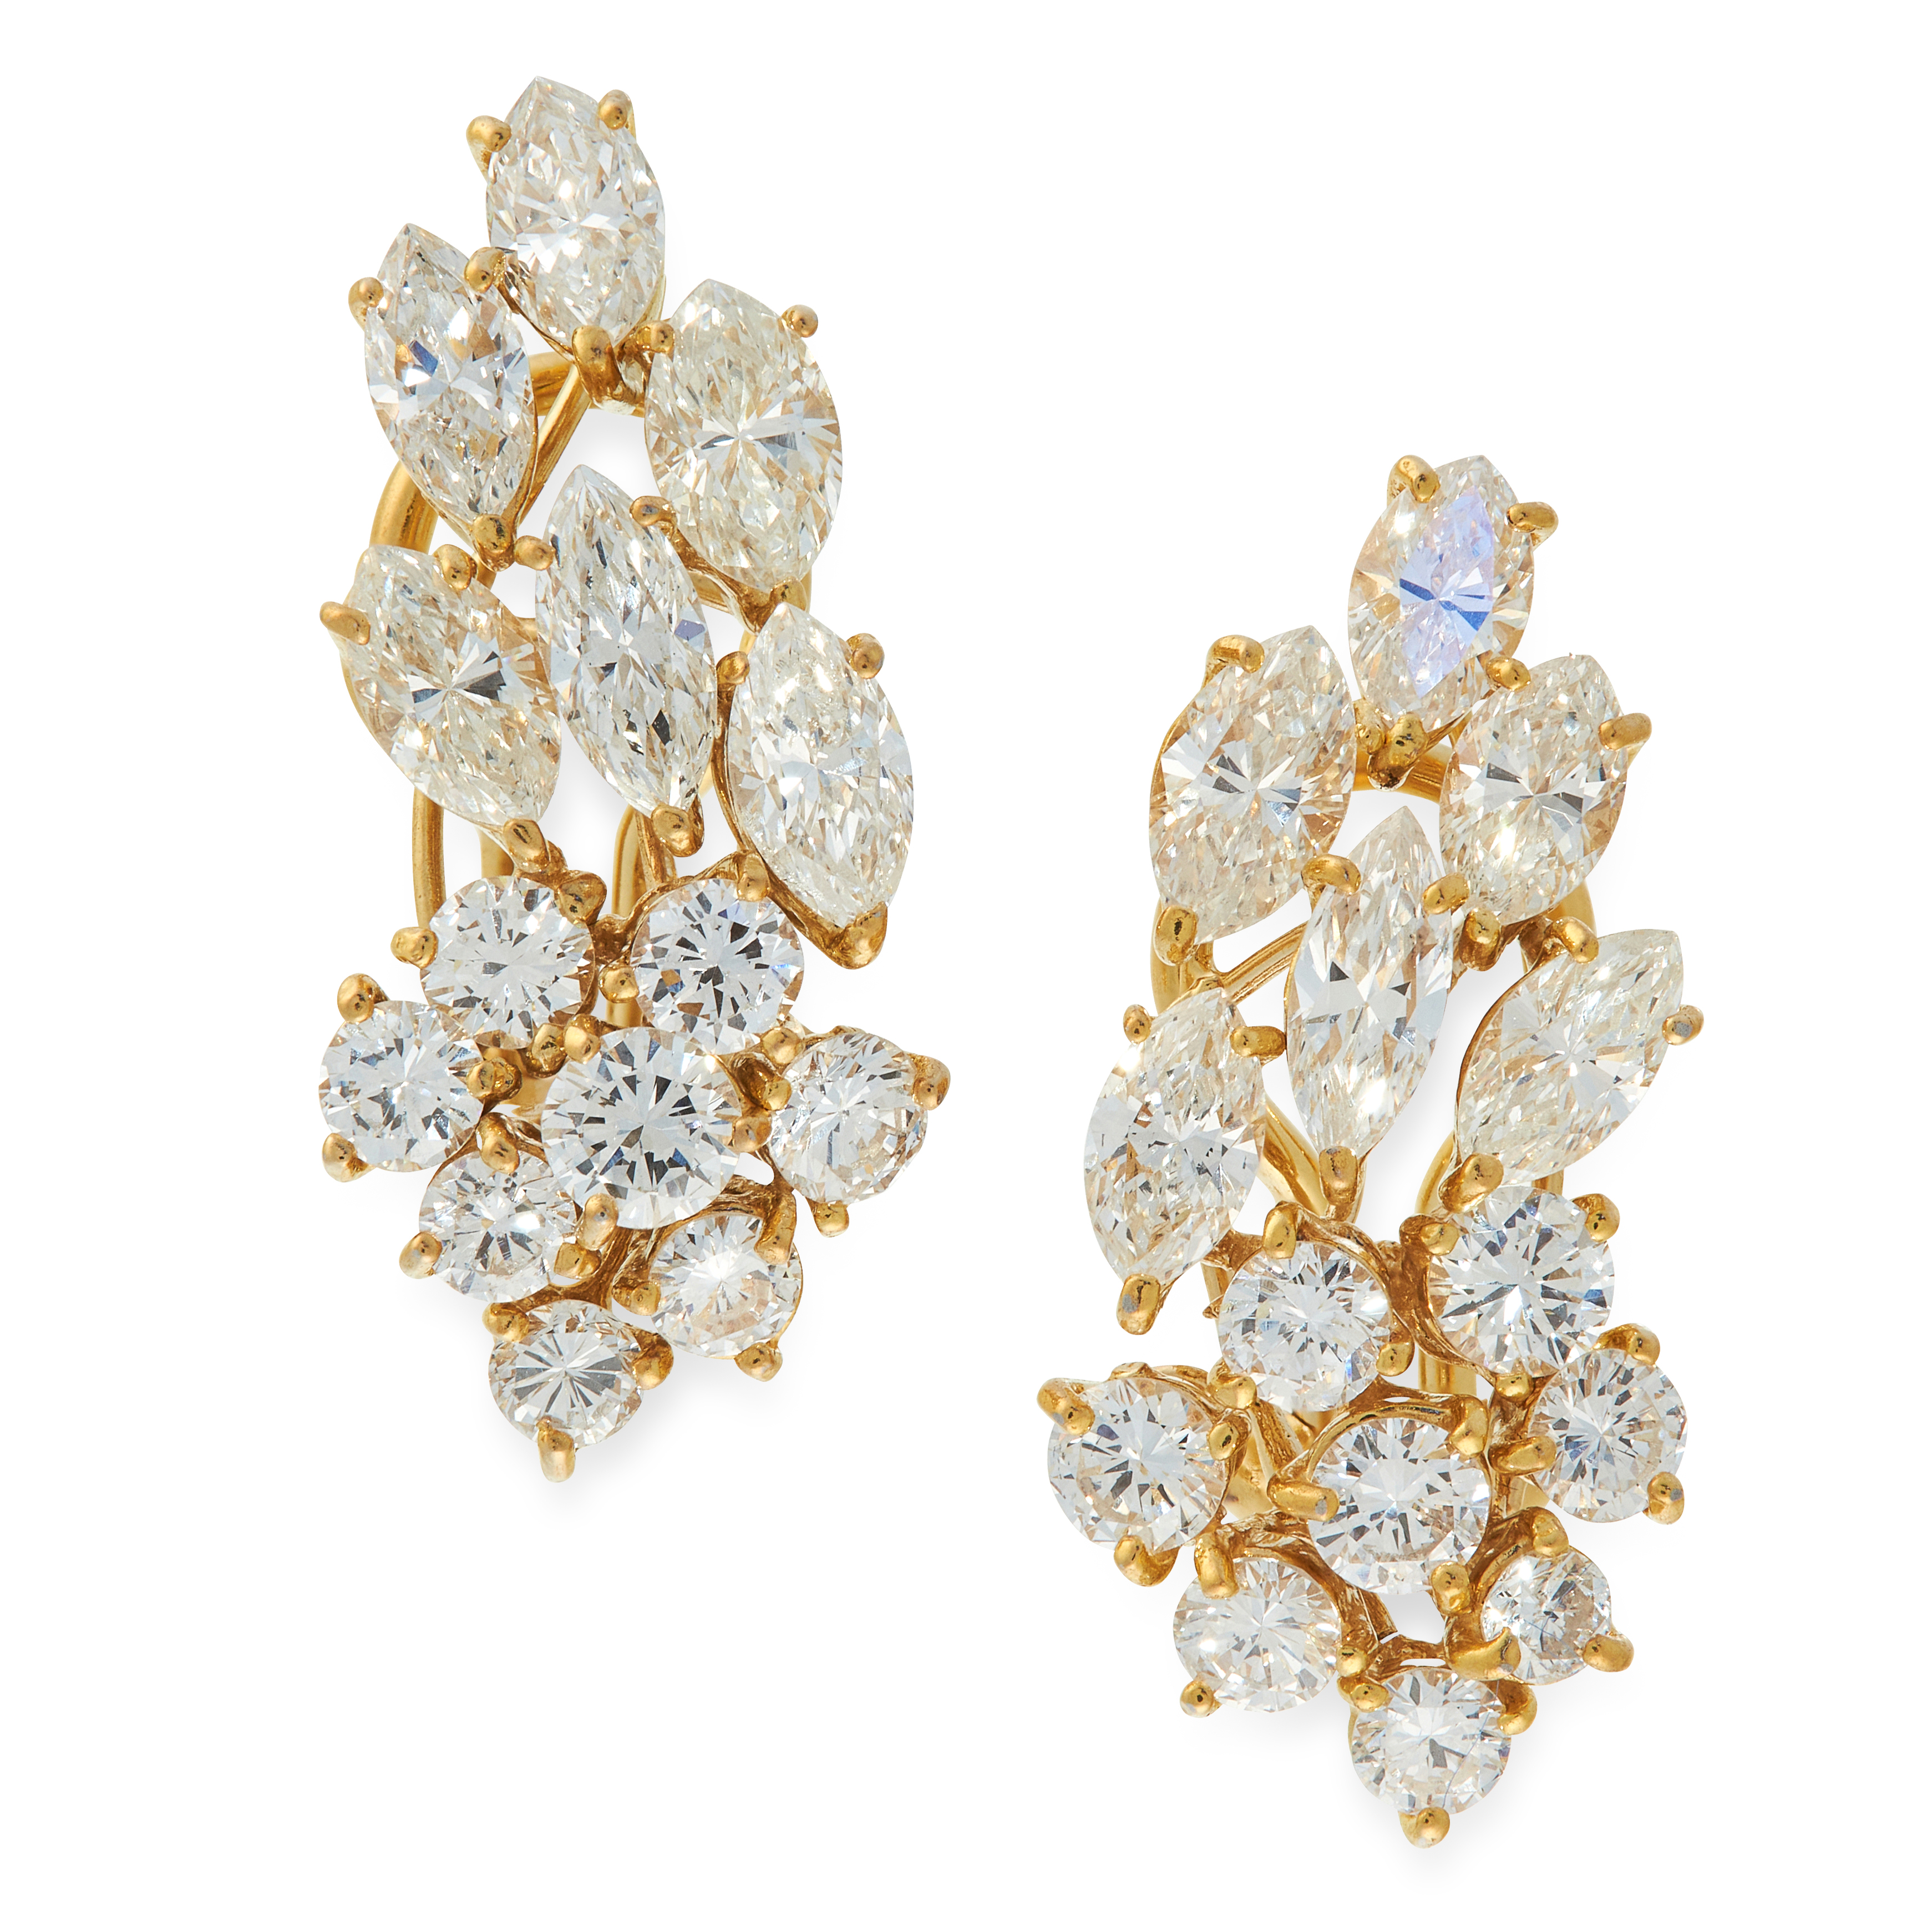 A DIAMOND BROOCH / PENDANT AND EARRINGS SUITE in yellow gold, each of foliate design, set with - Image 2 of 2